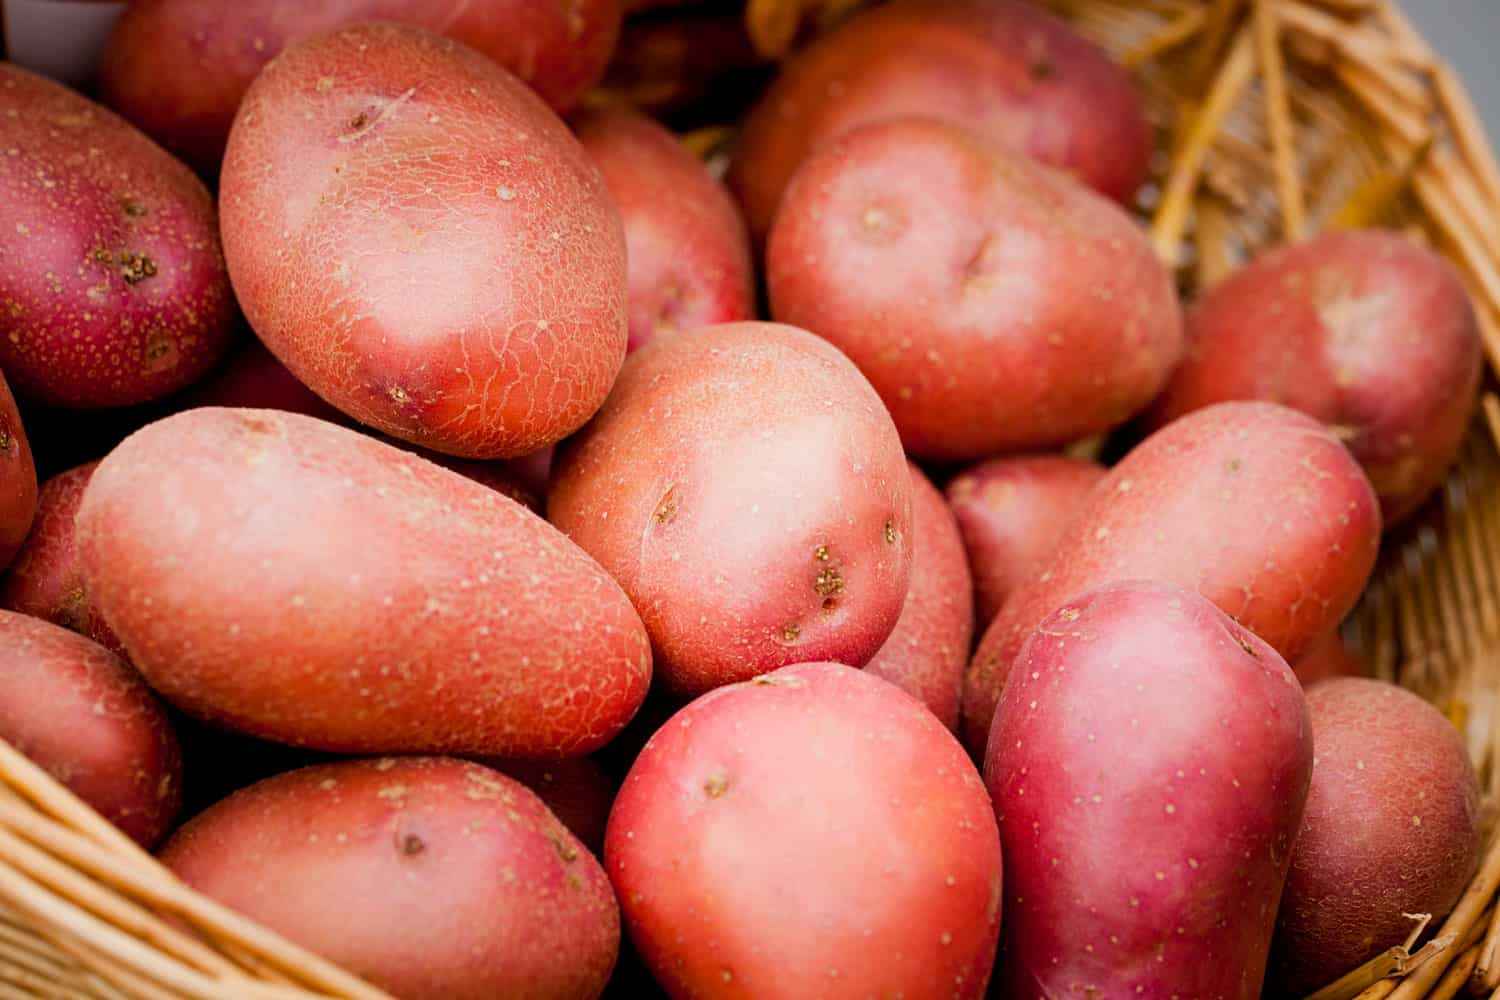 An up close and detailed view of rooster potatoes